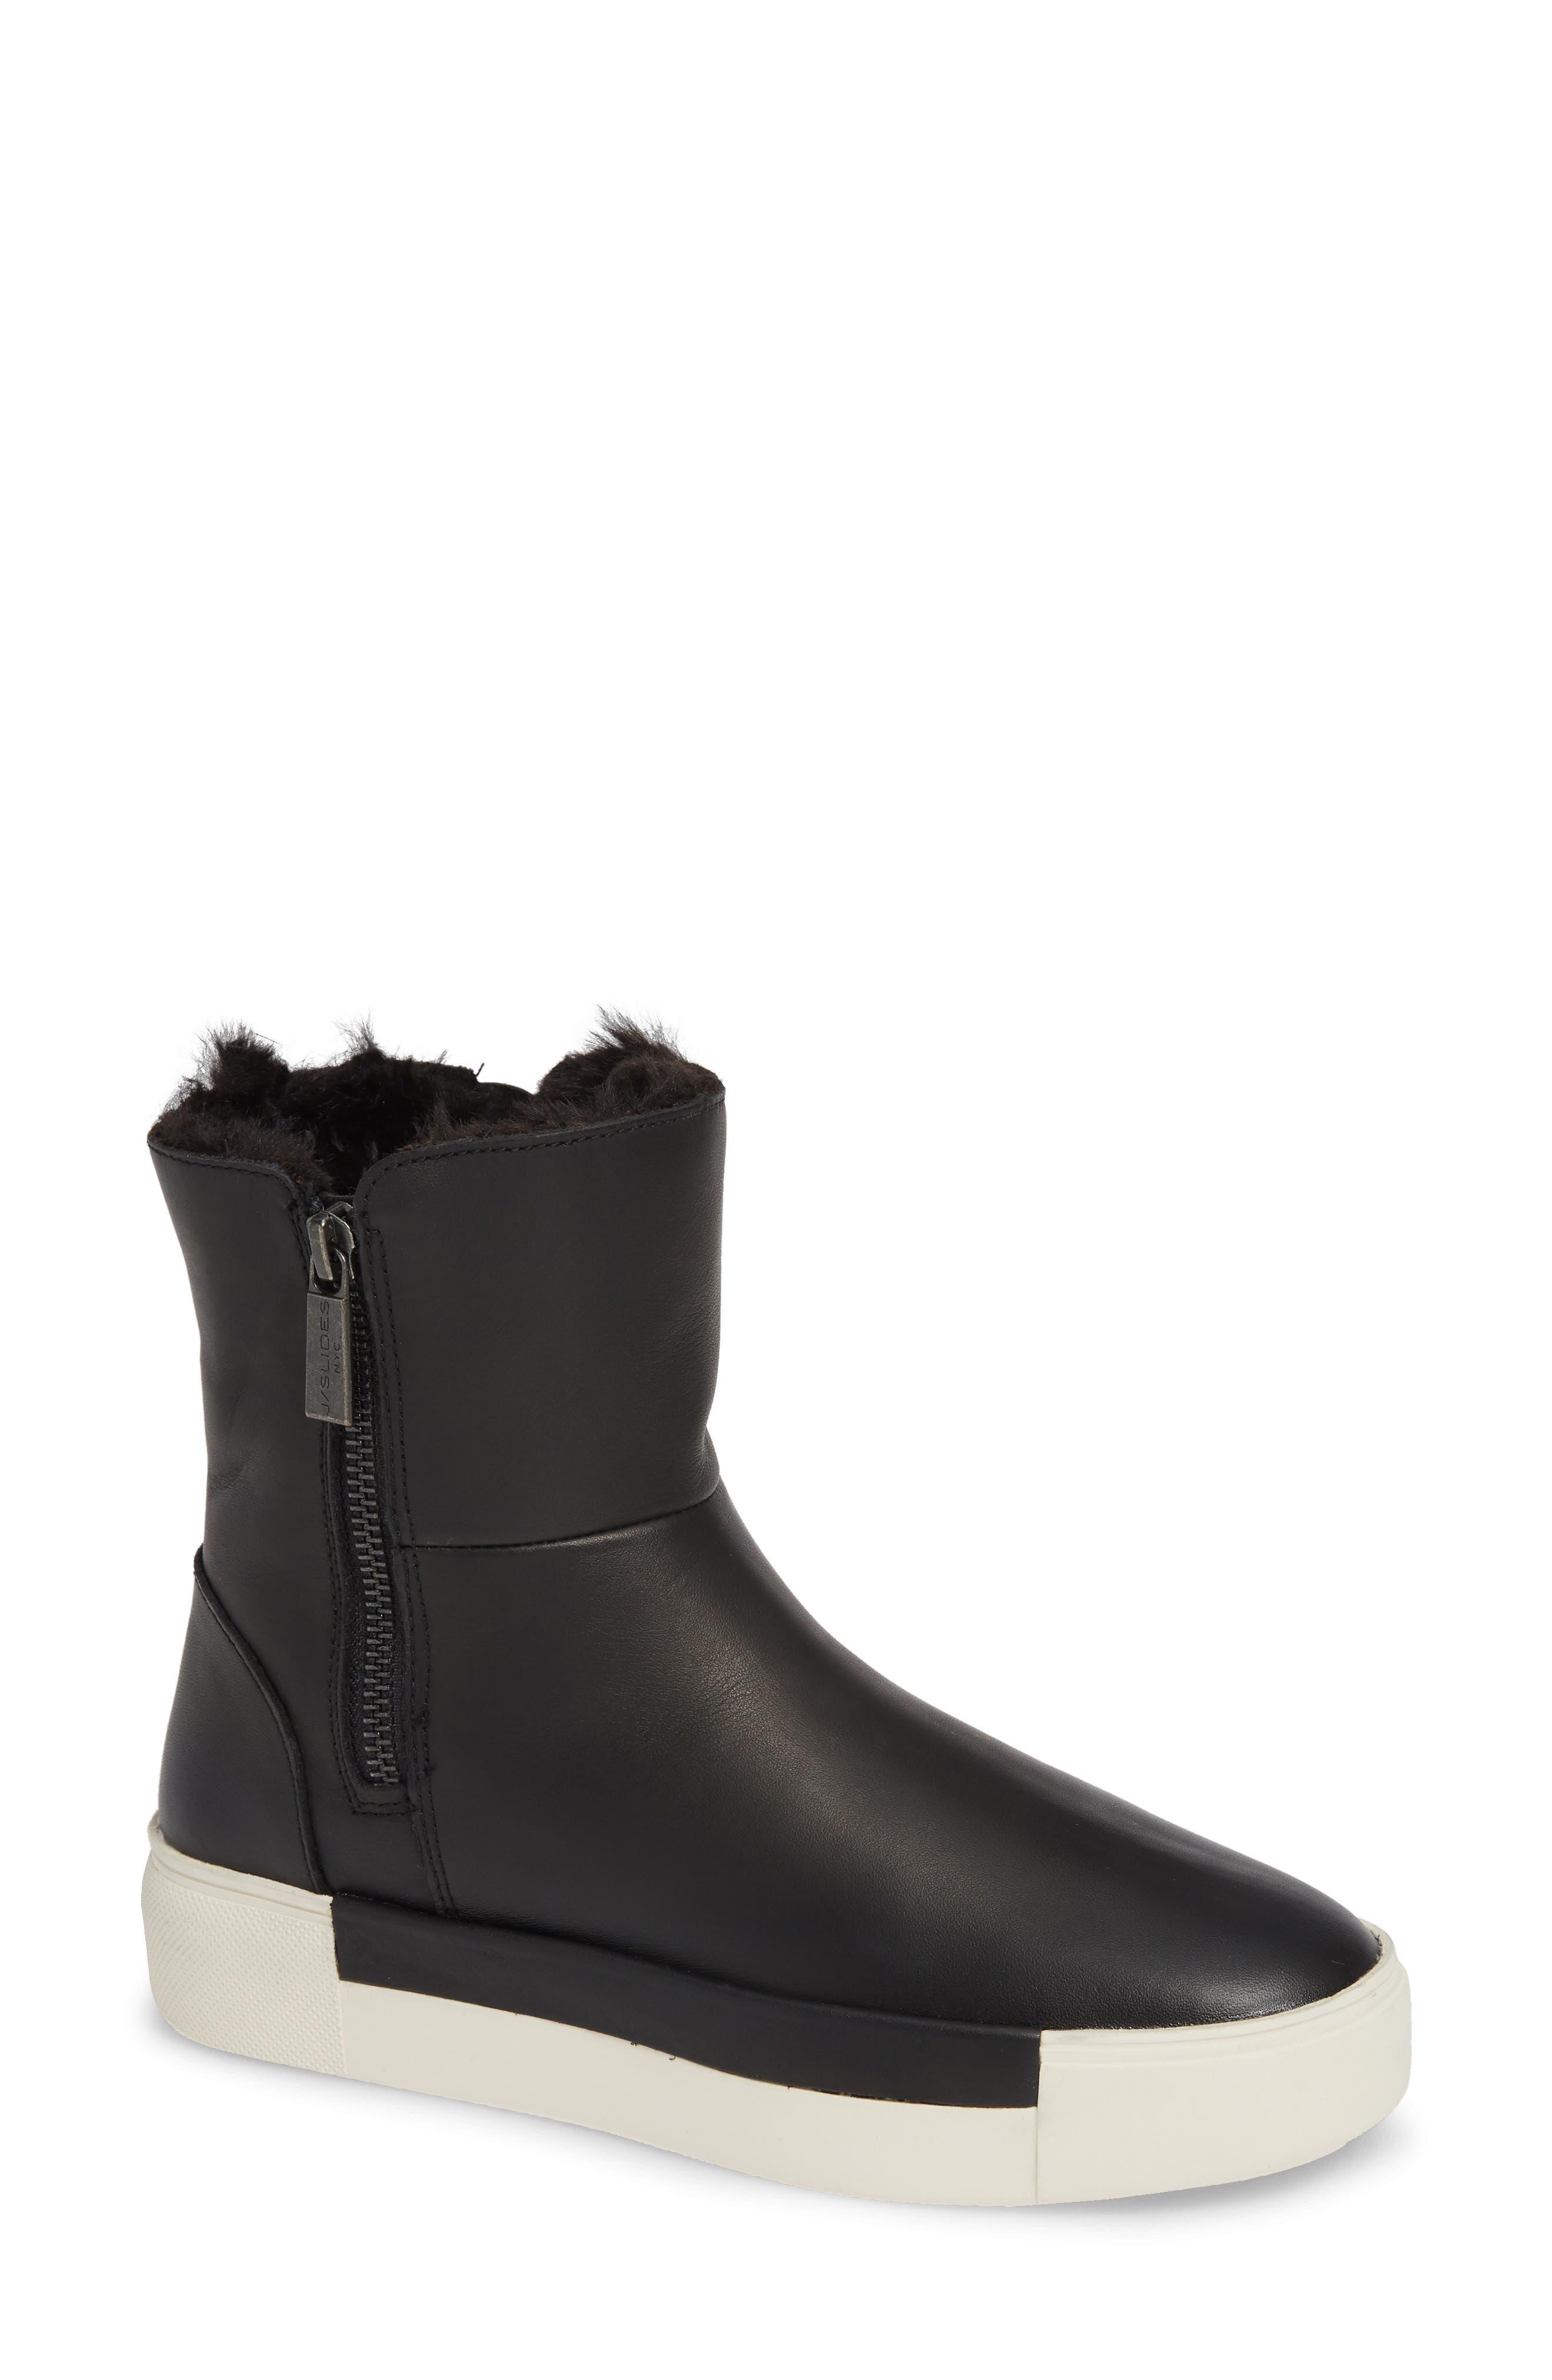 Victory Double Zip Boot,                             Main thumbnail 1, color,                             BLACK WATERPROOF LEATHER